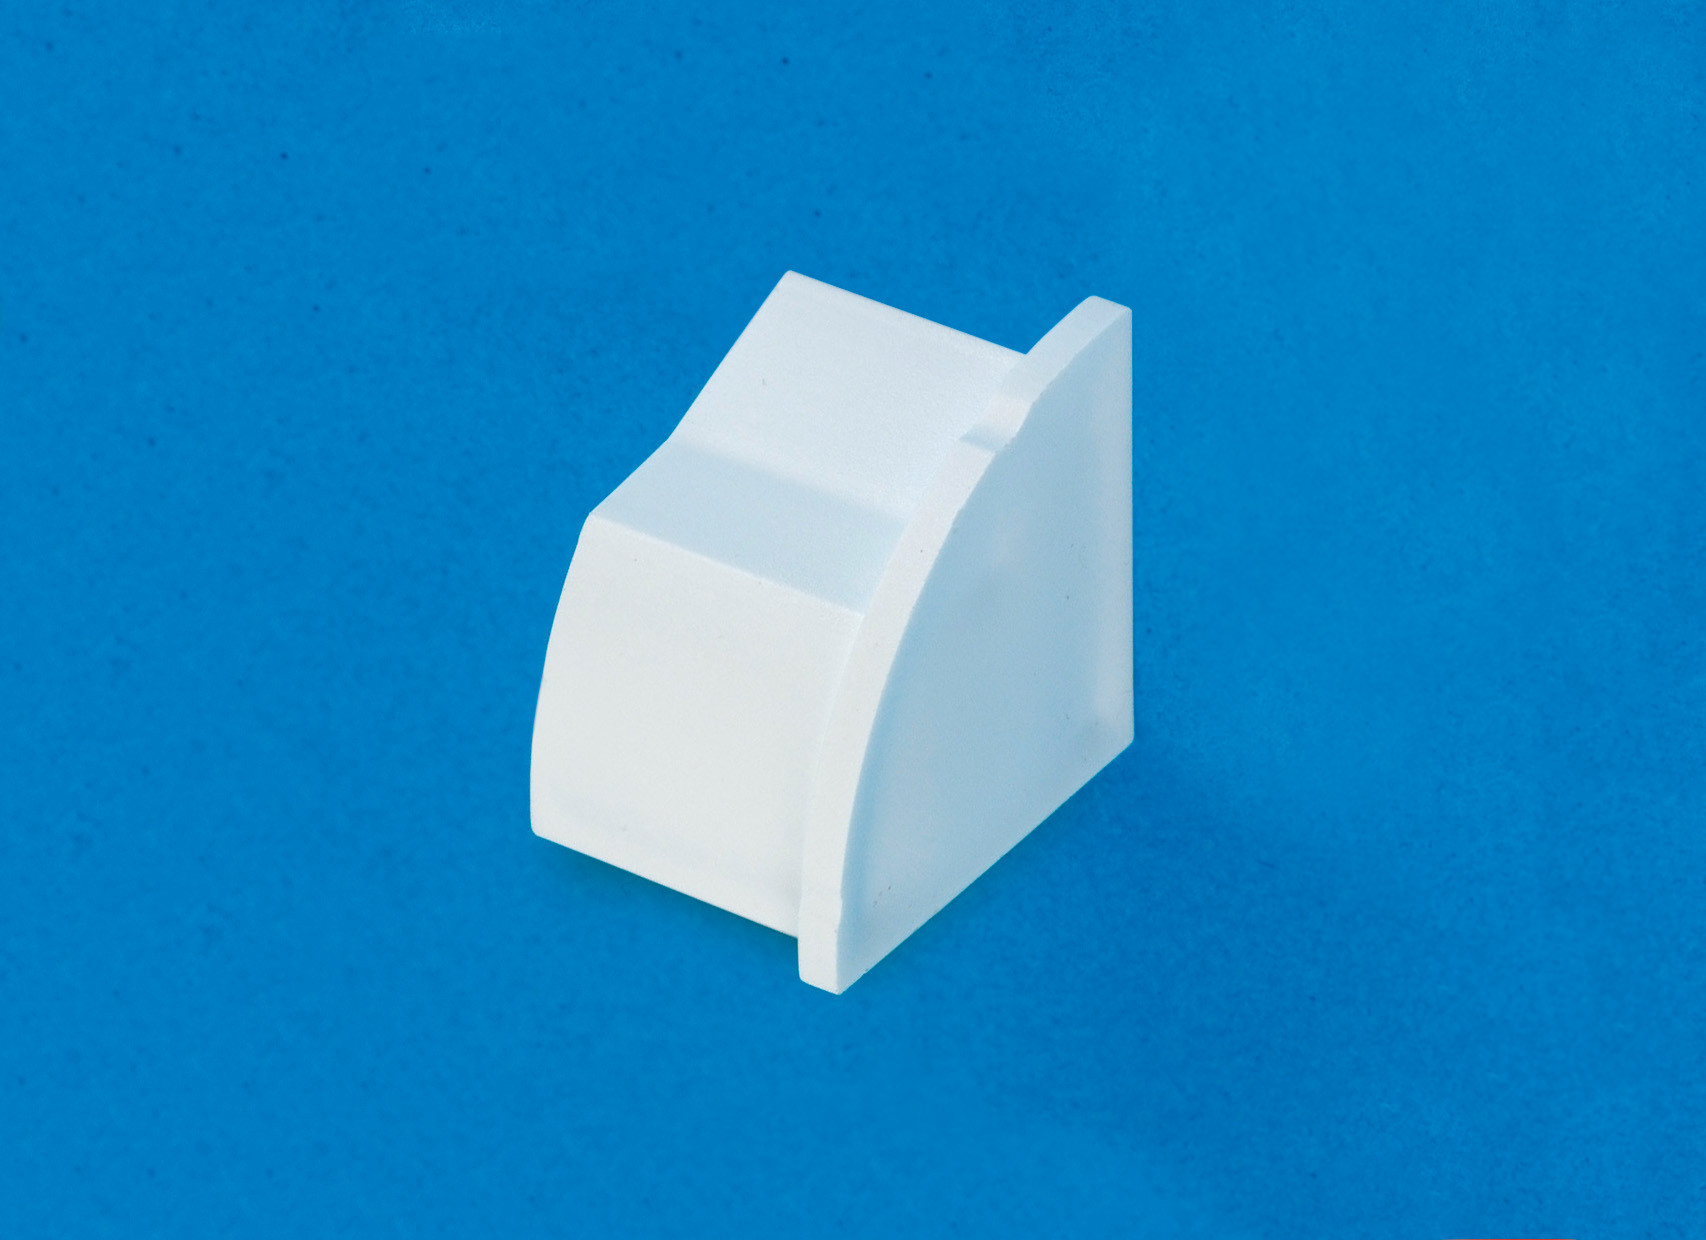 22 x 22mm Smooth-fit End Cap (Right) White